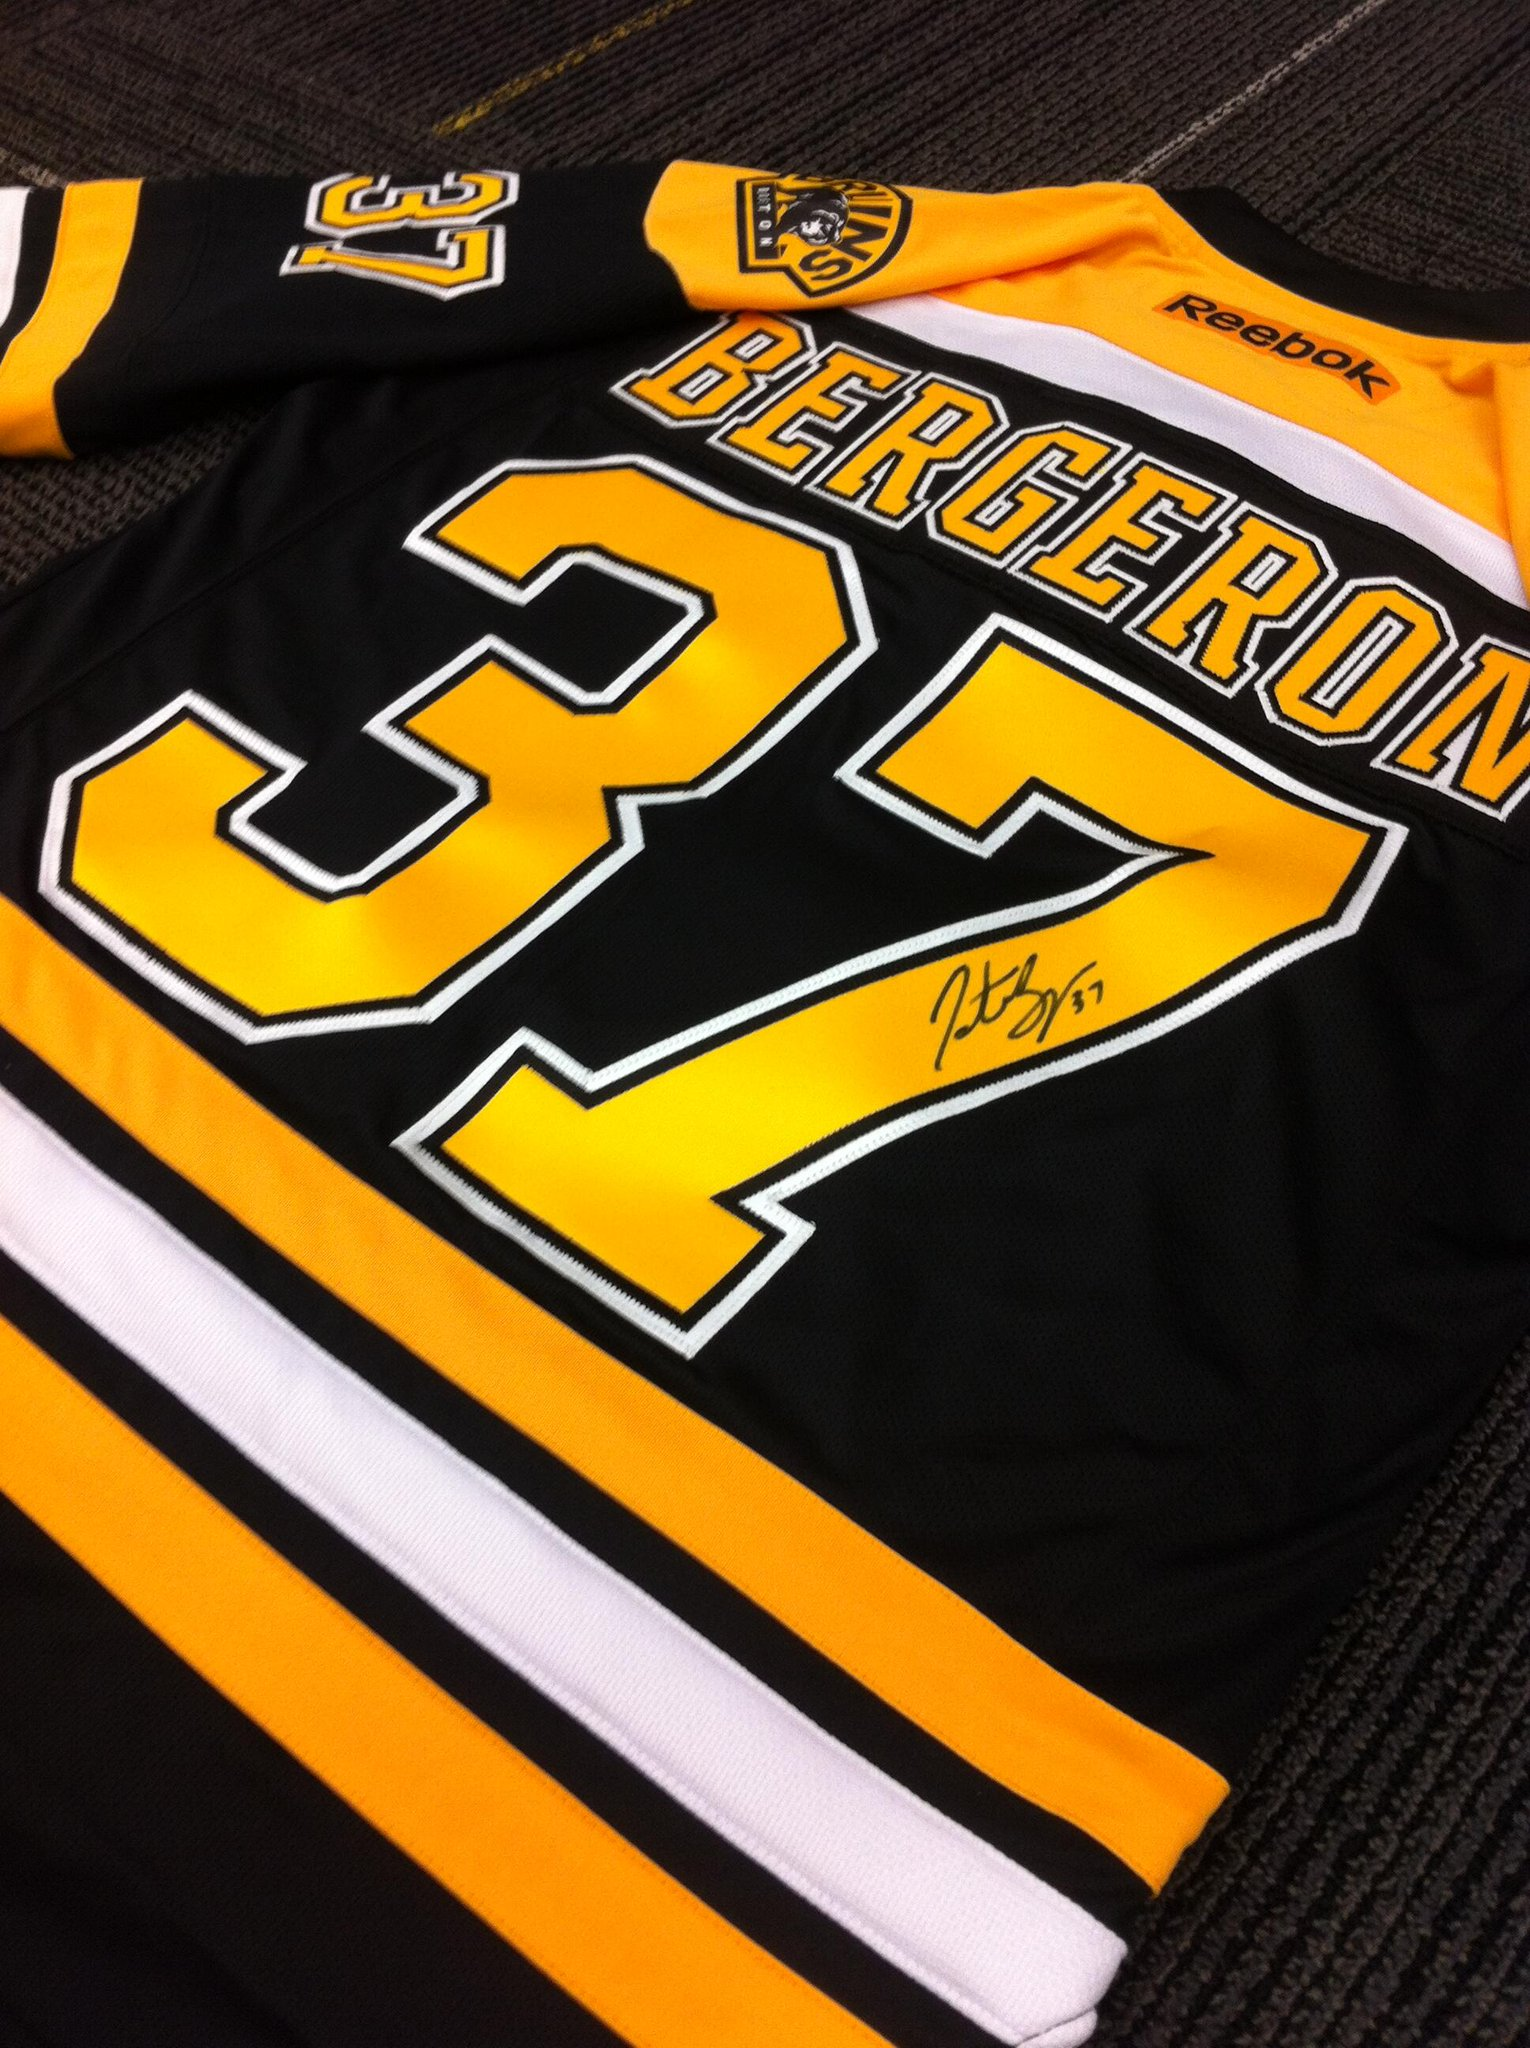 RT @NHLBruins: RT this by midnight ET for the chance to win a #NHL15Bergeron signed jersey. http://t.co/Ye2jHoszx4